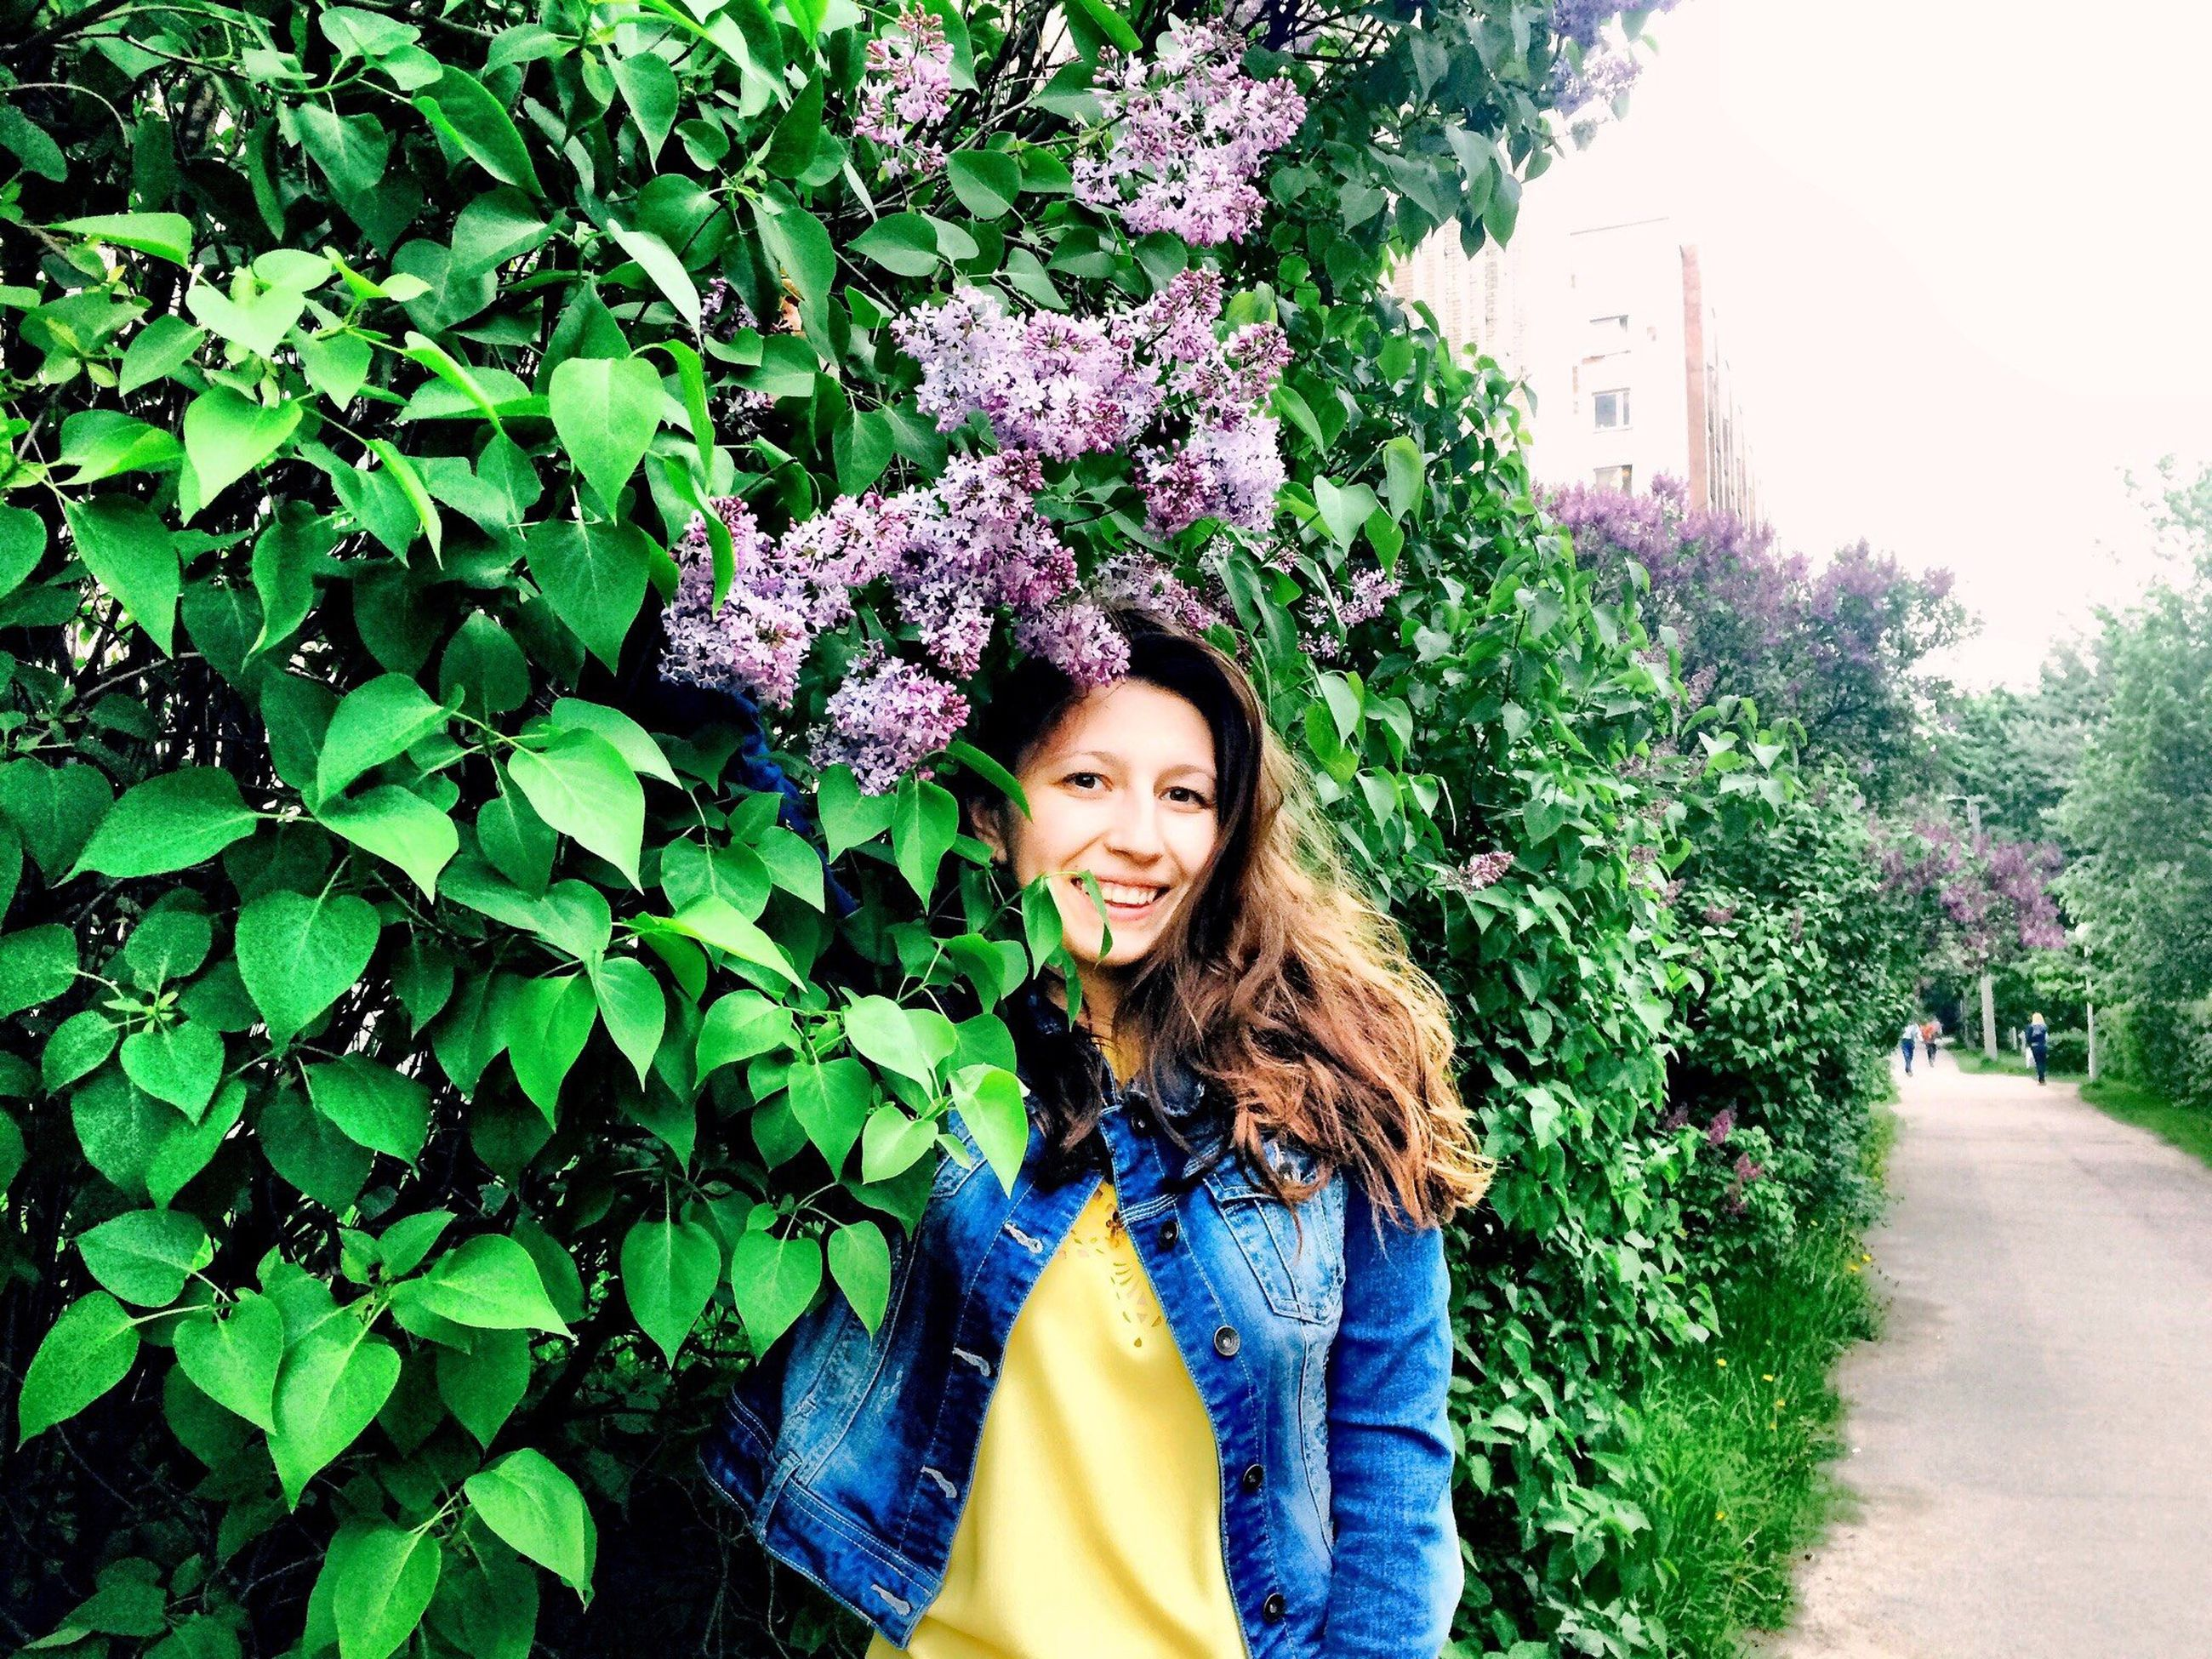 person, lifestyles, young women, young adult, leisure activity, looking at camera, casual clothing, tree, portrait, smiling, long hair, front view, growth, flower, standing, plant, park - man made space